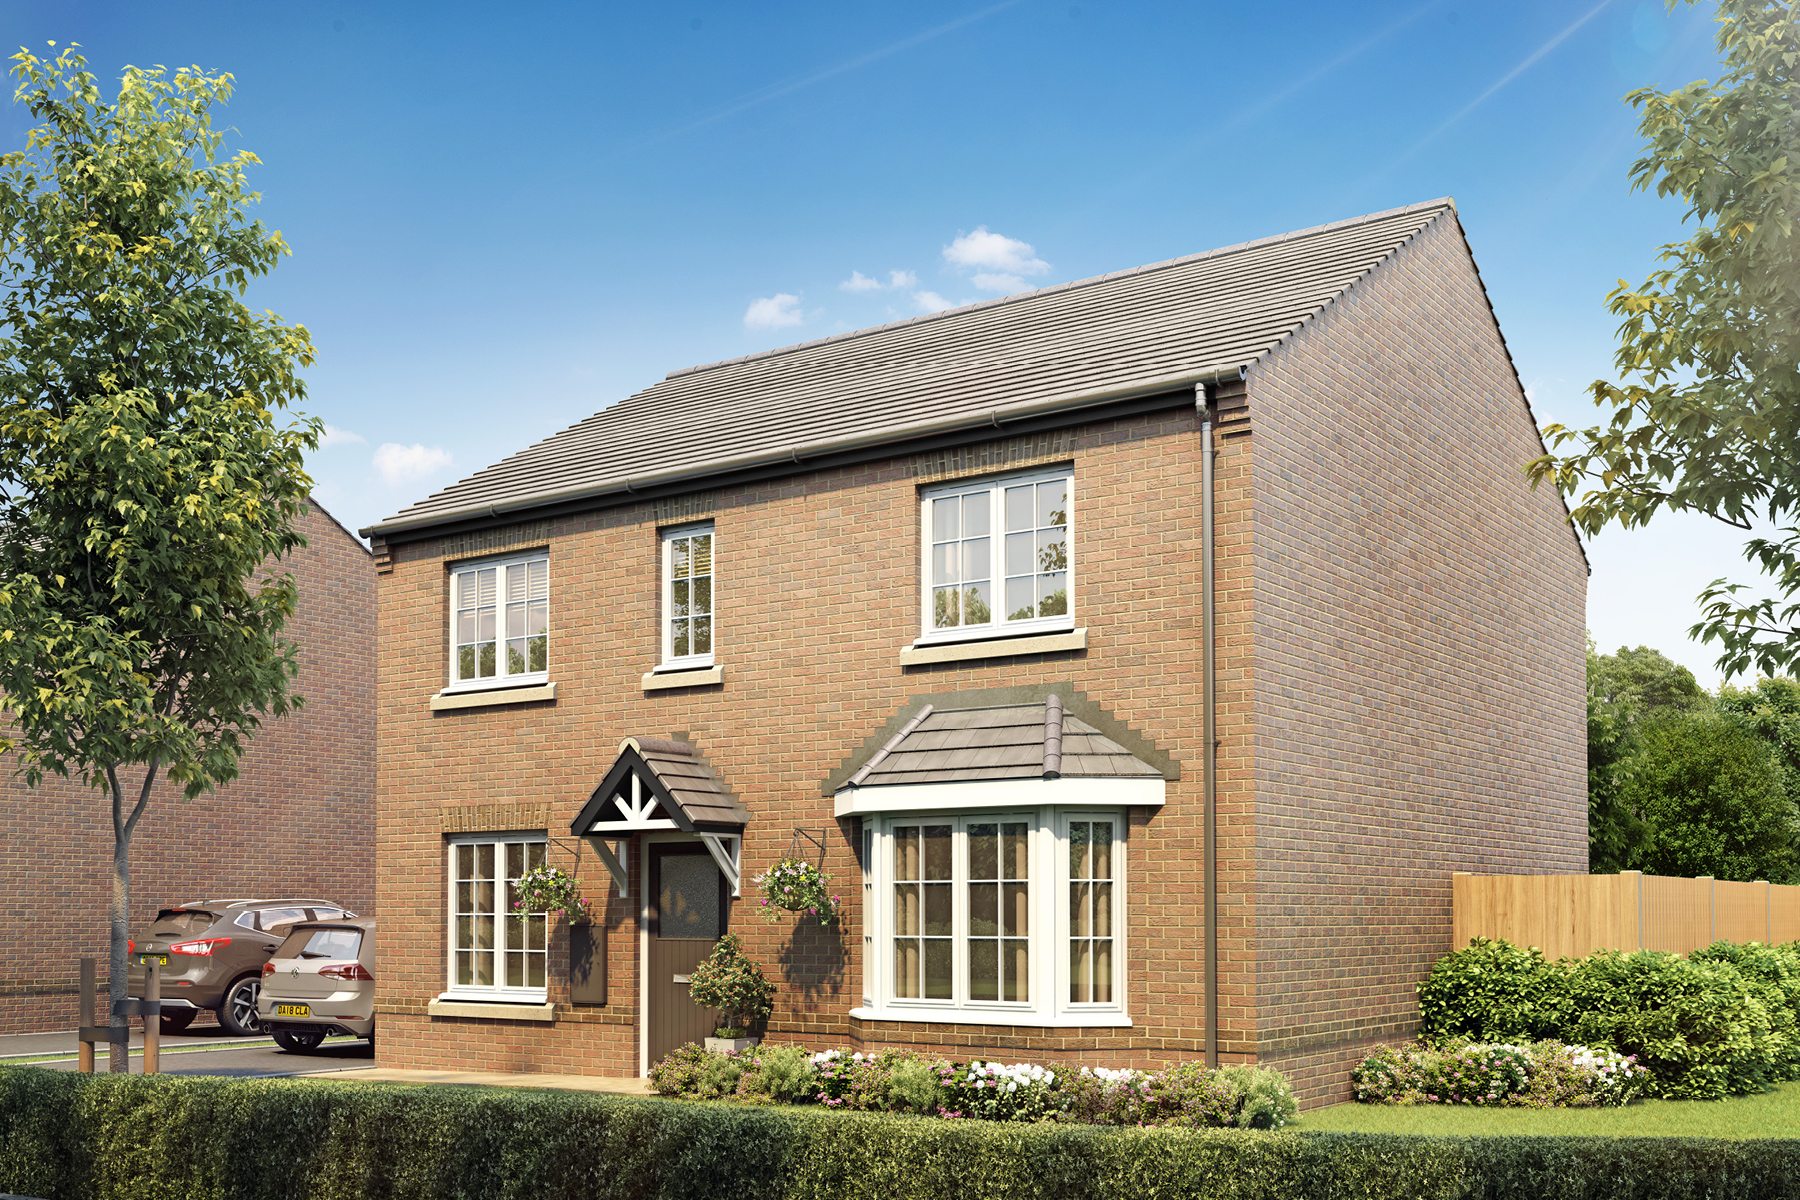 New TWY - Foxley Meadows - CGI - Shelford